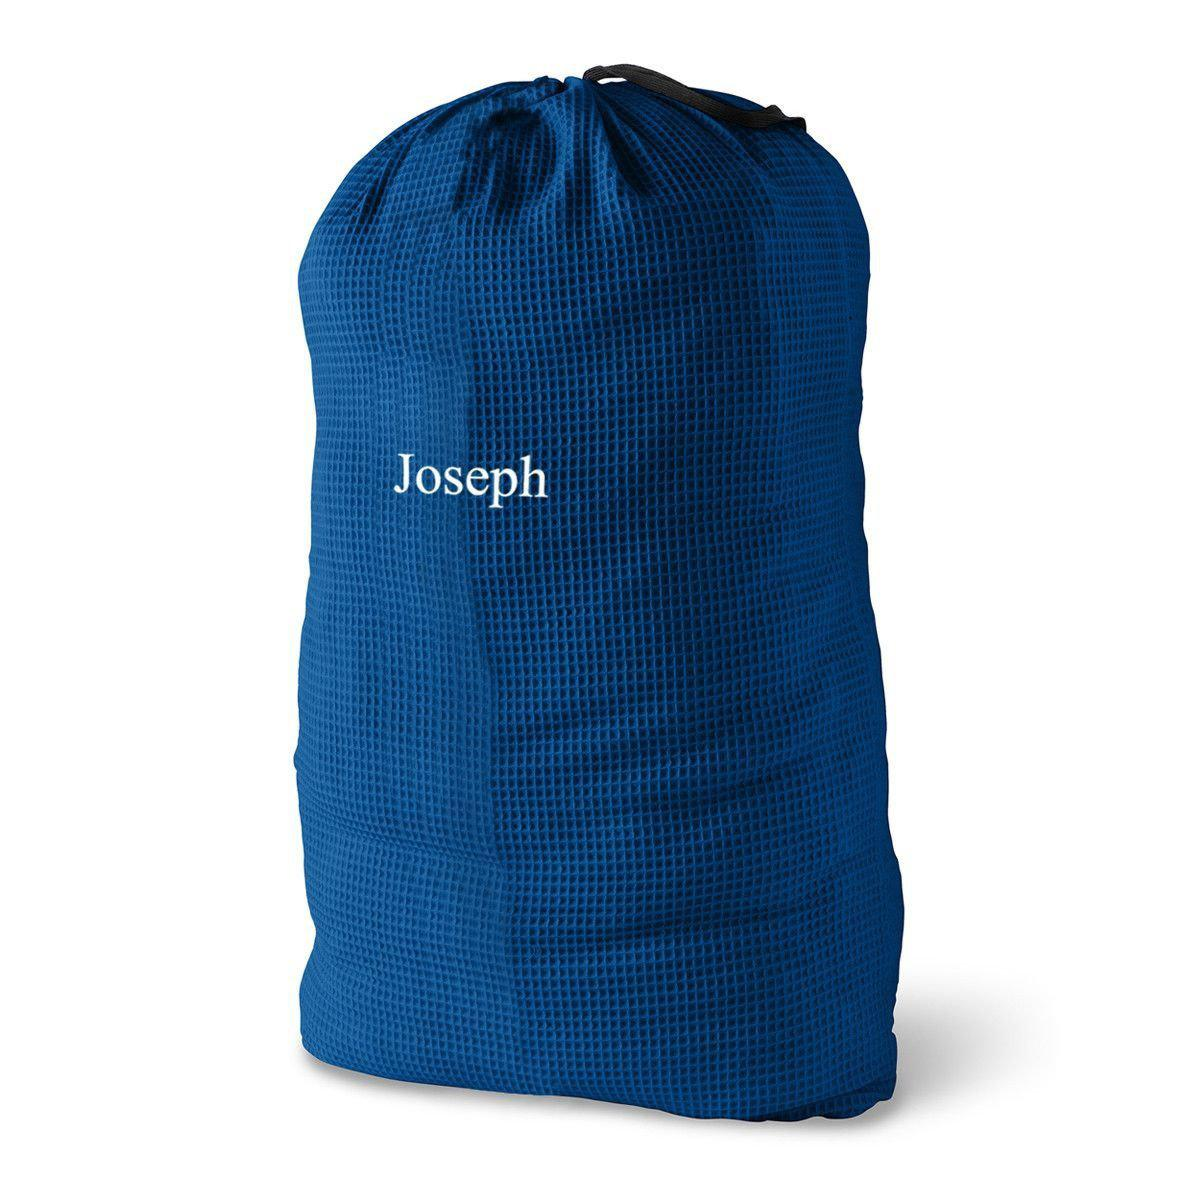 Personalized Waffle Knit Laundry Bags